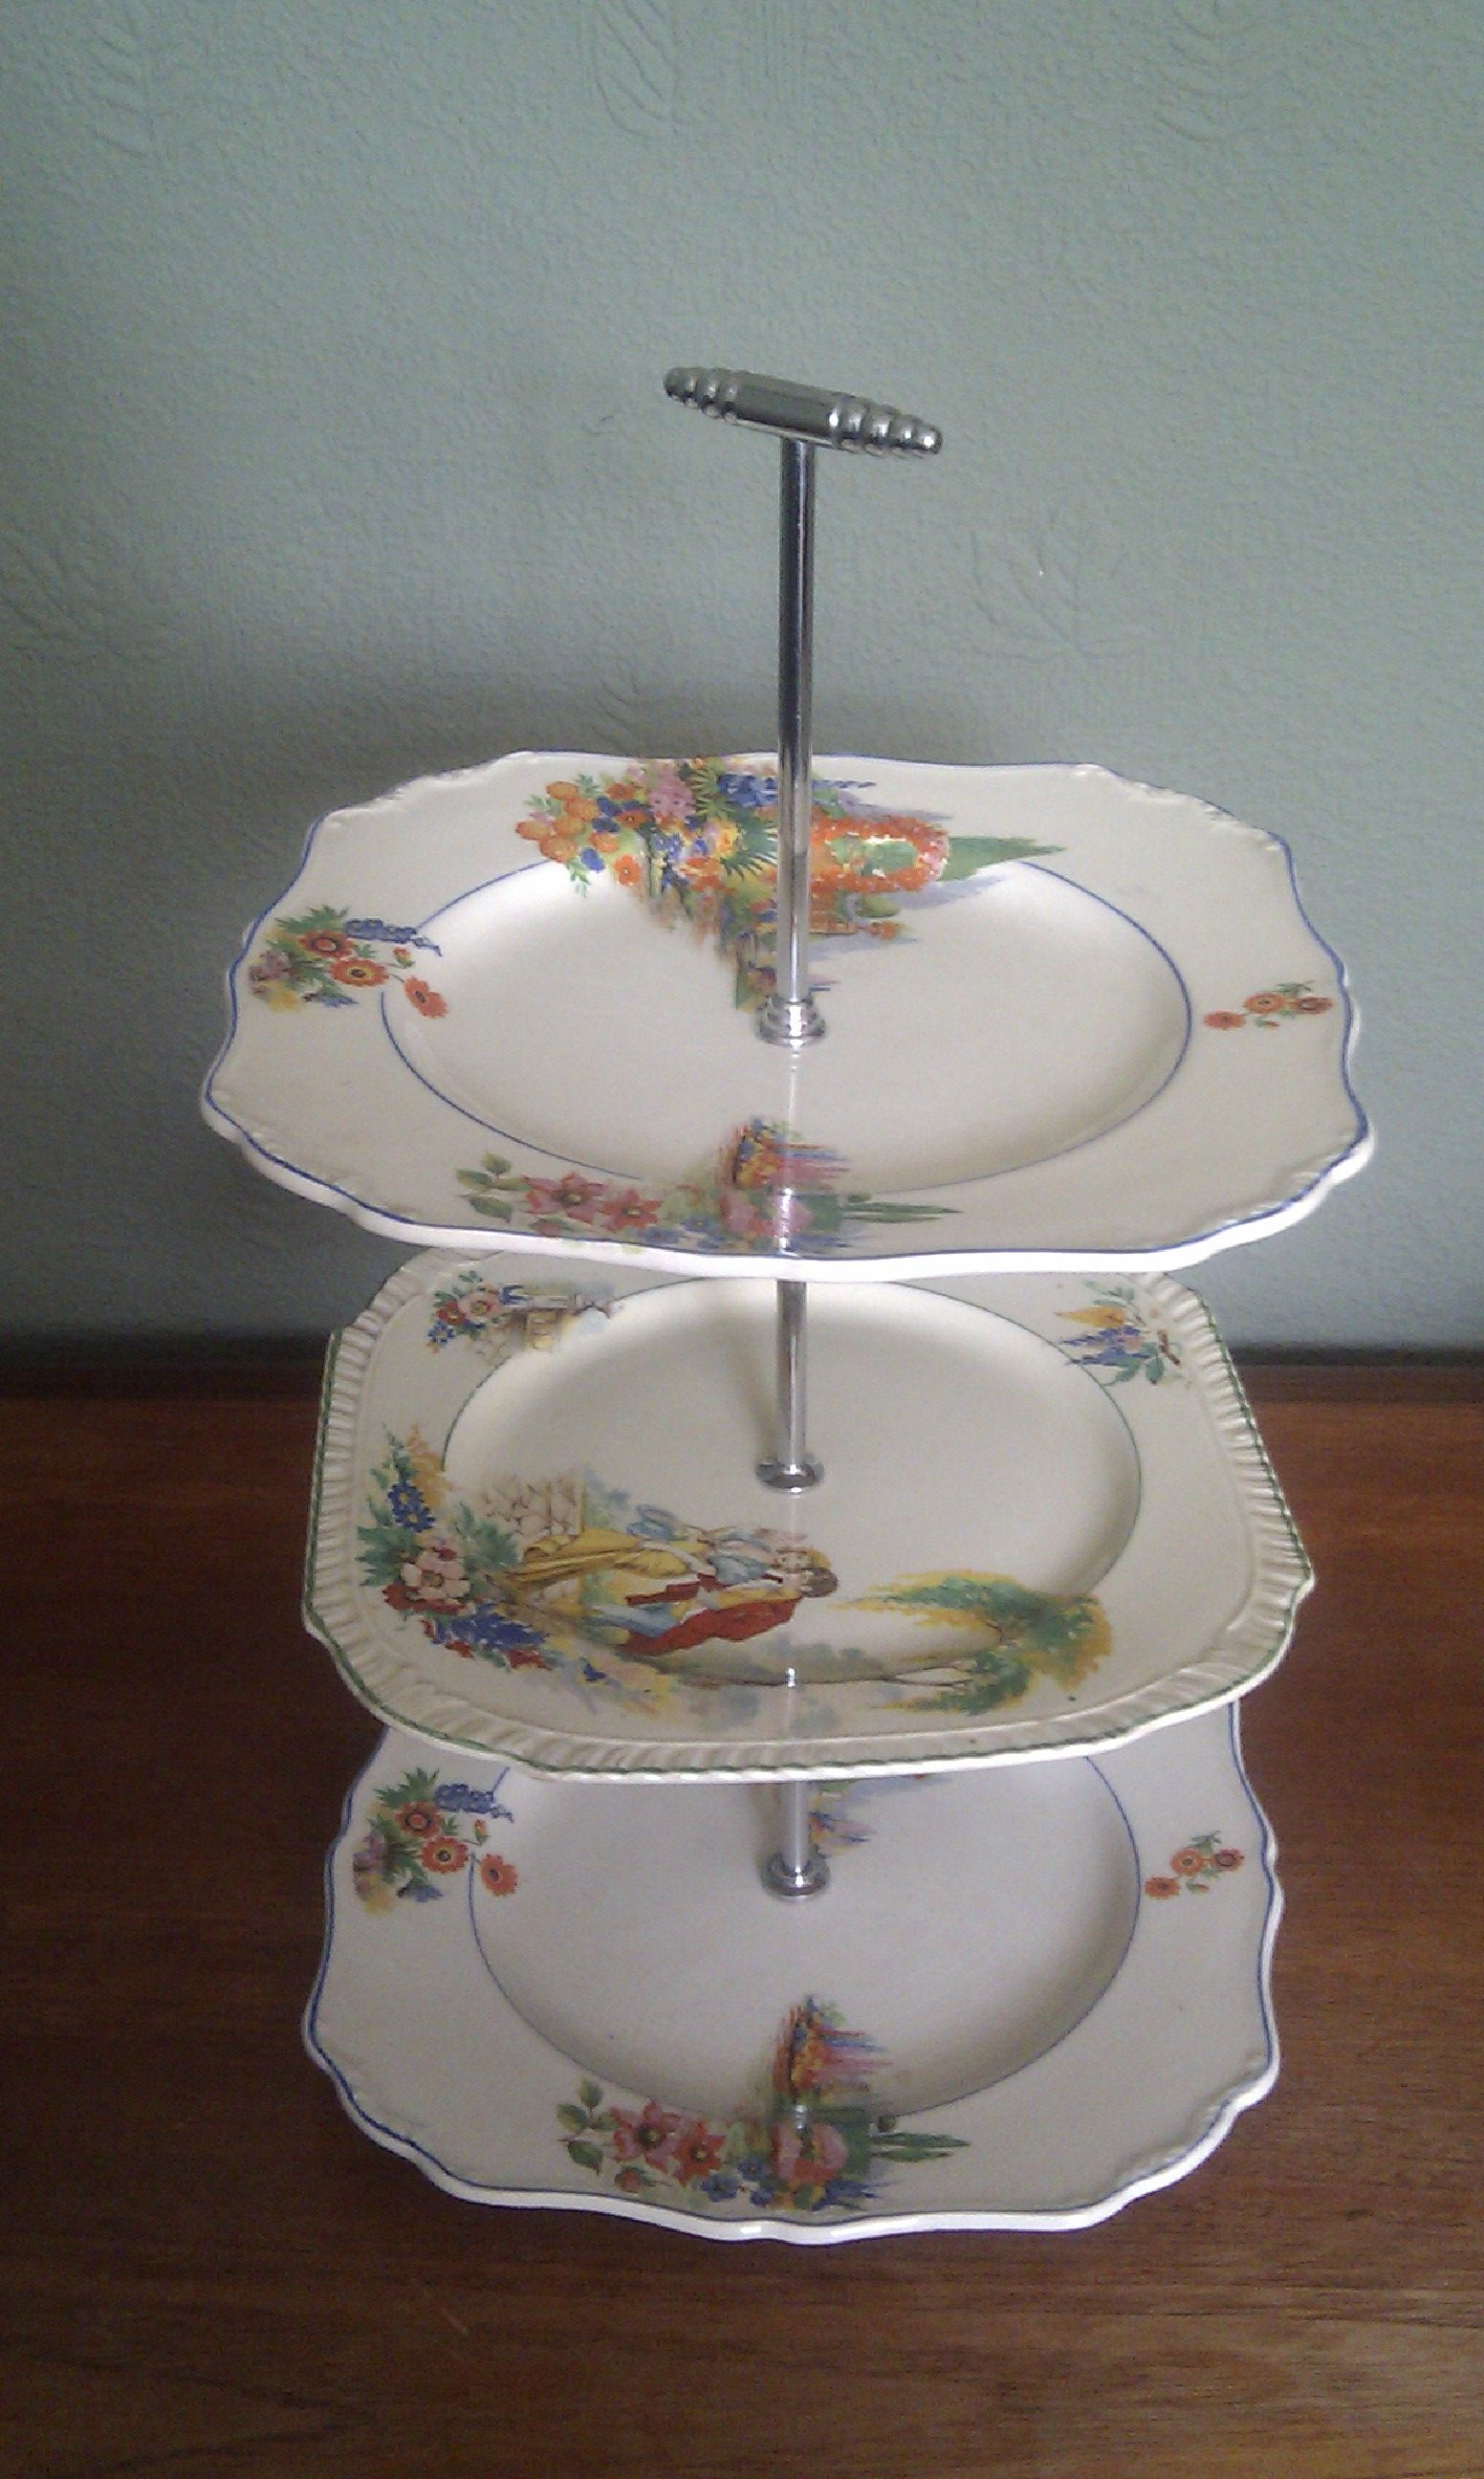 Eclectic 3 tier vintage cake stand 2 layers are meakin